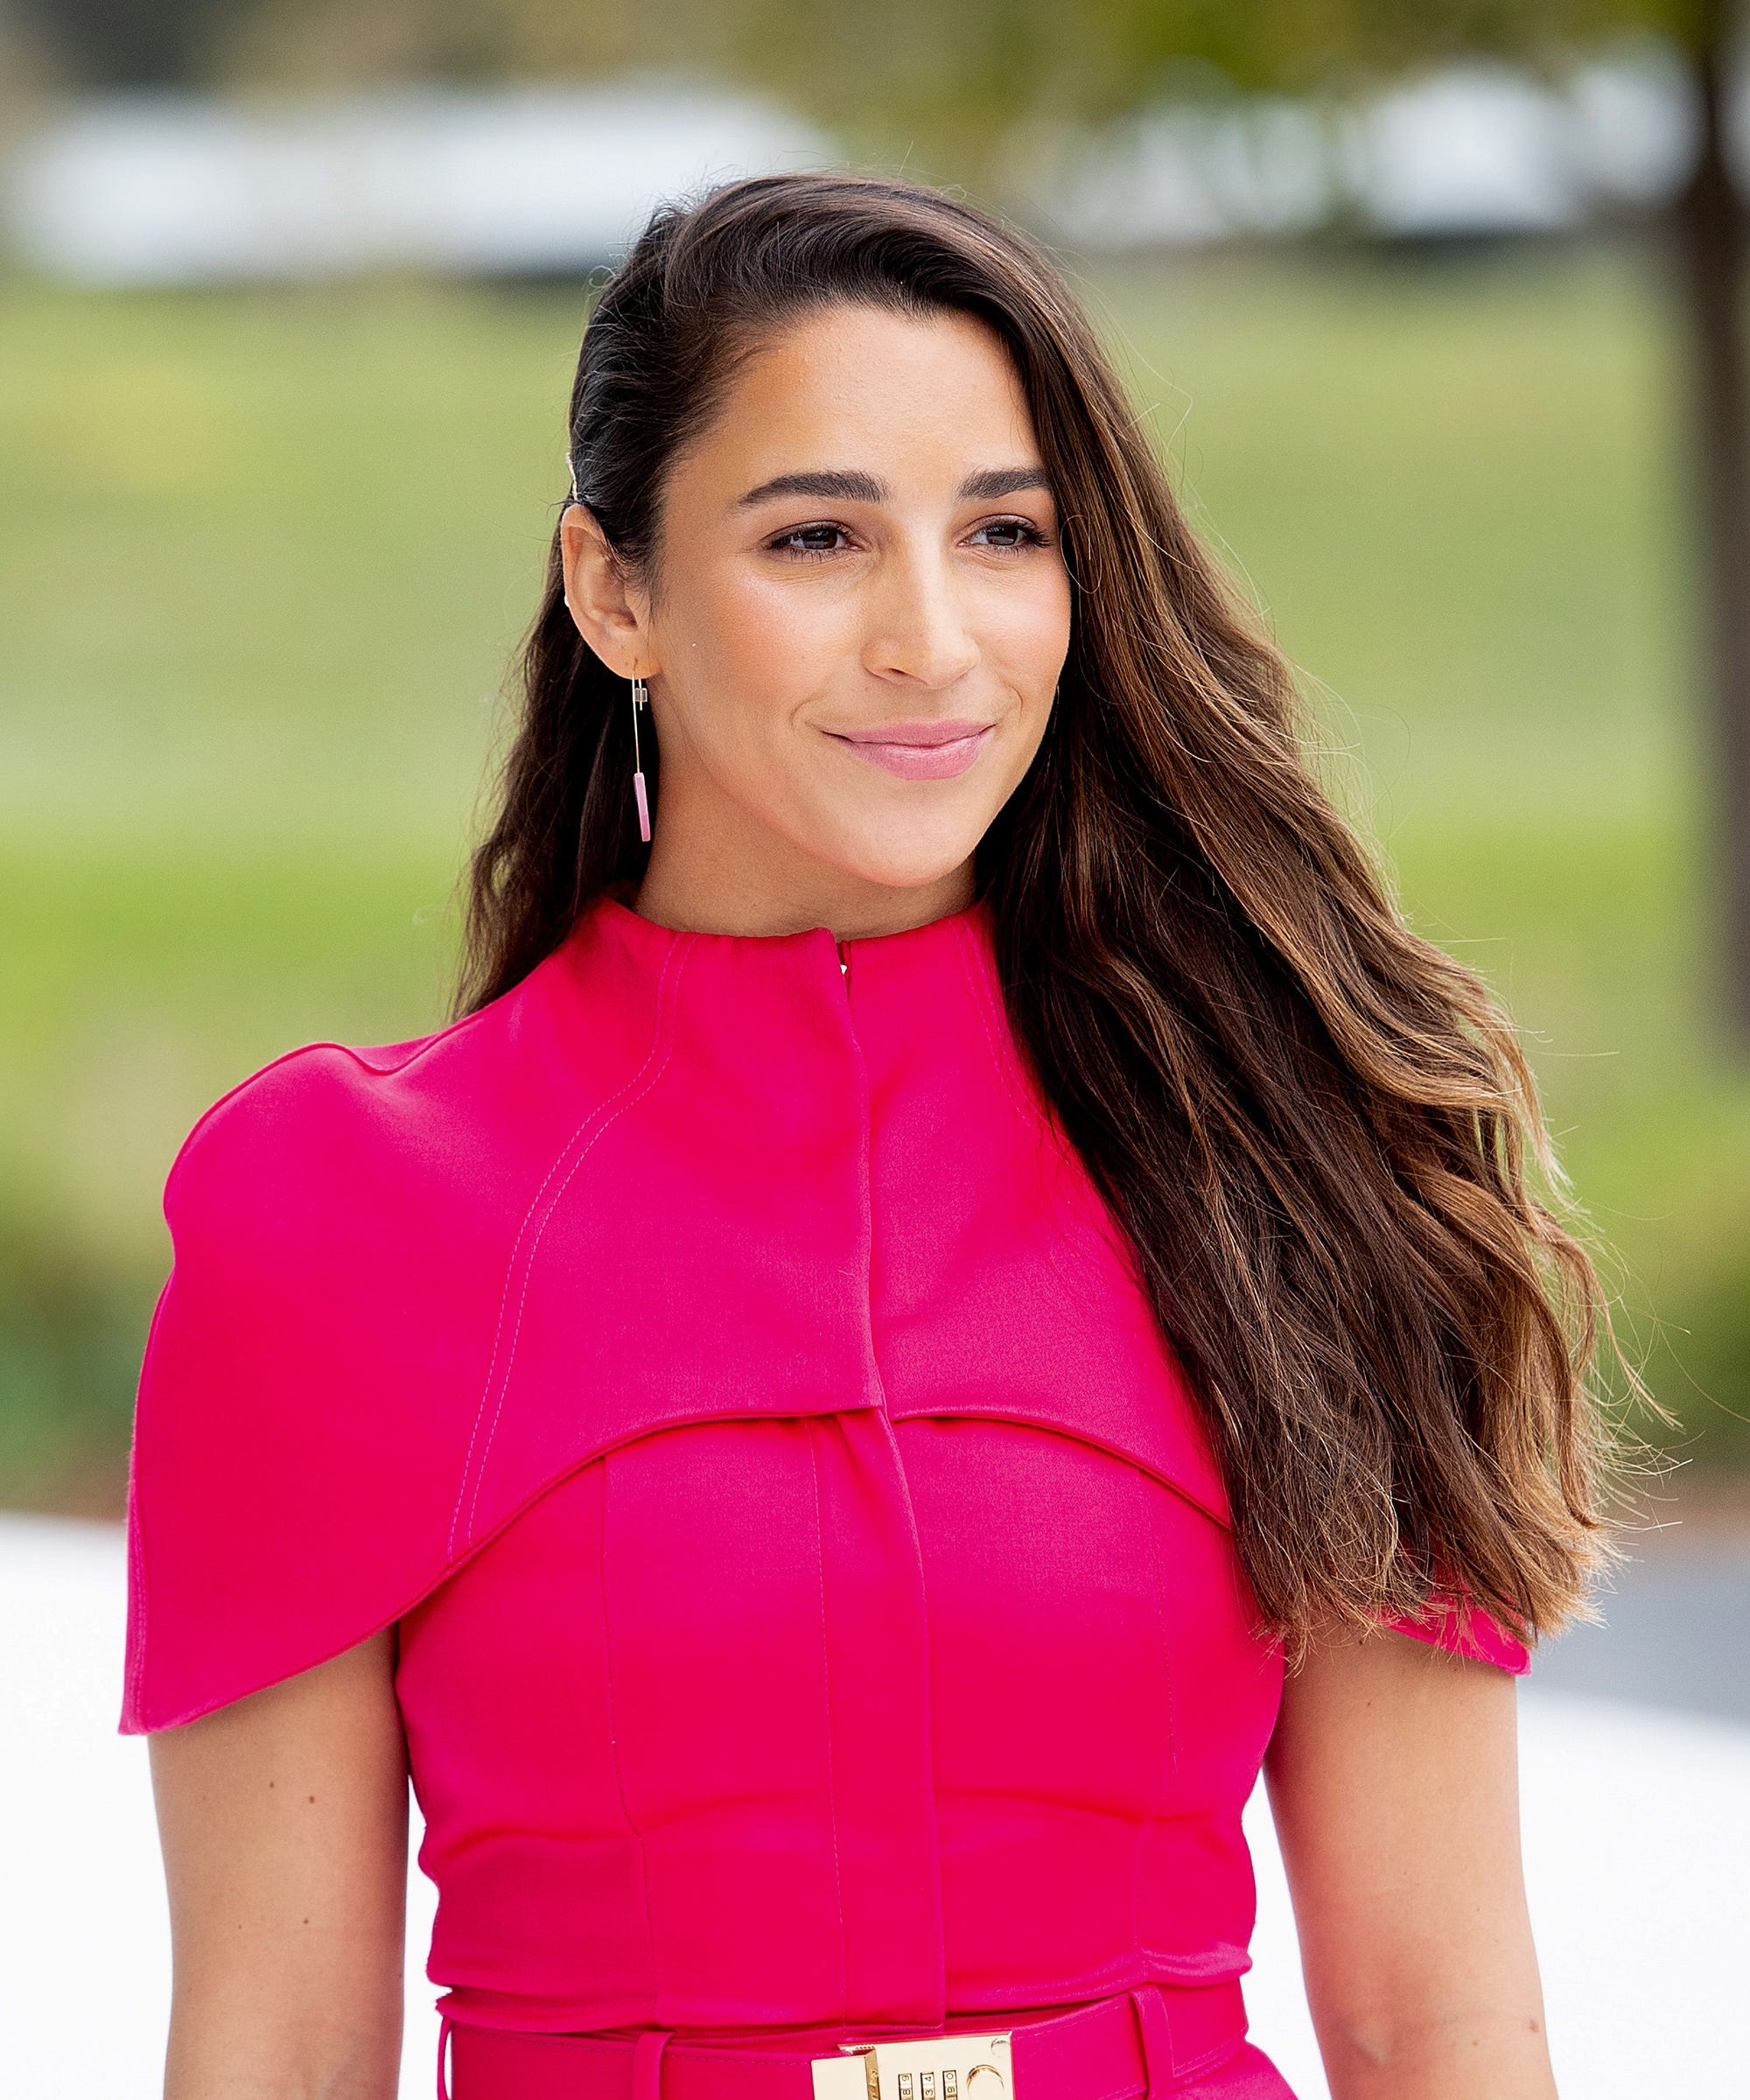 Aly Raisman Discusses Next Steps For Helping Survivors Of Sexual Abuse